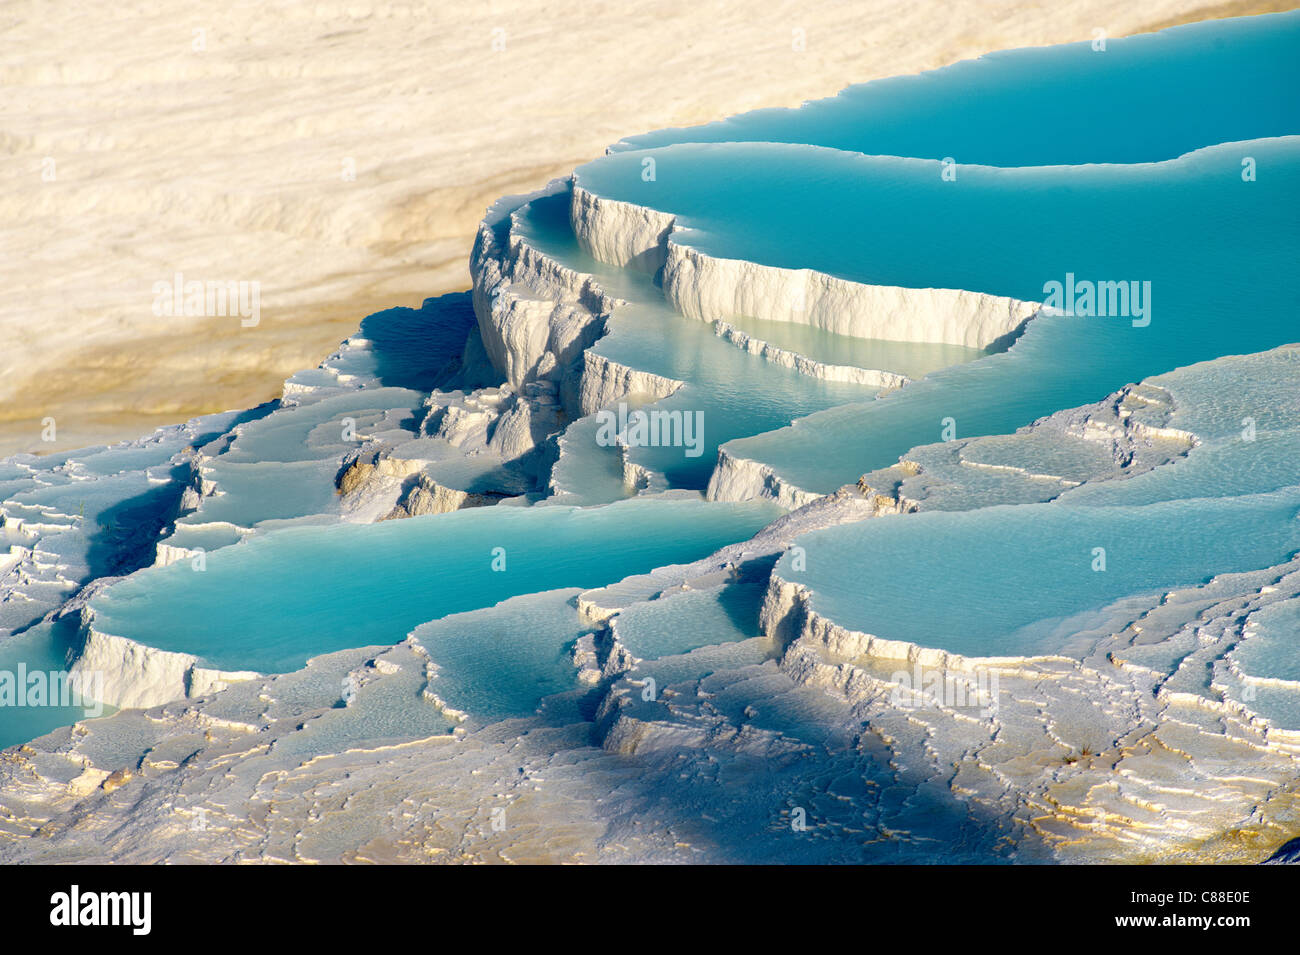 Pamukkale travetine terrace water cascades, composed of Calcium carbonate rock formations, Pamukkale, Turkey - Stock Image